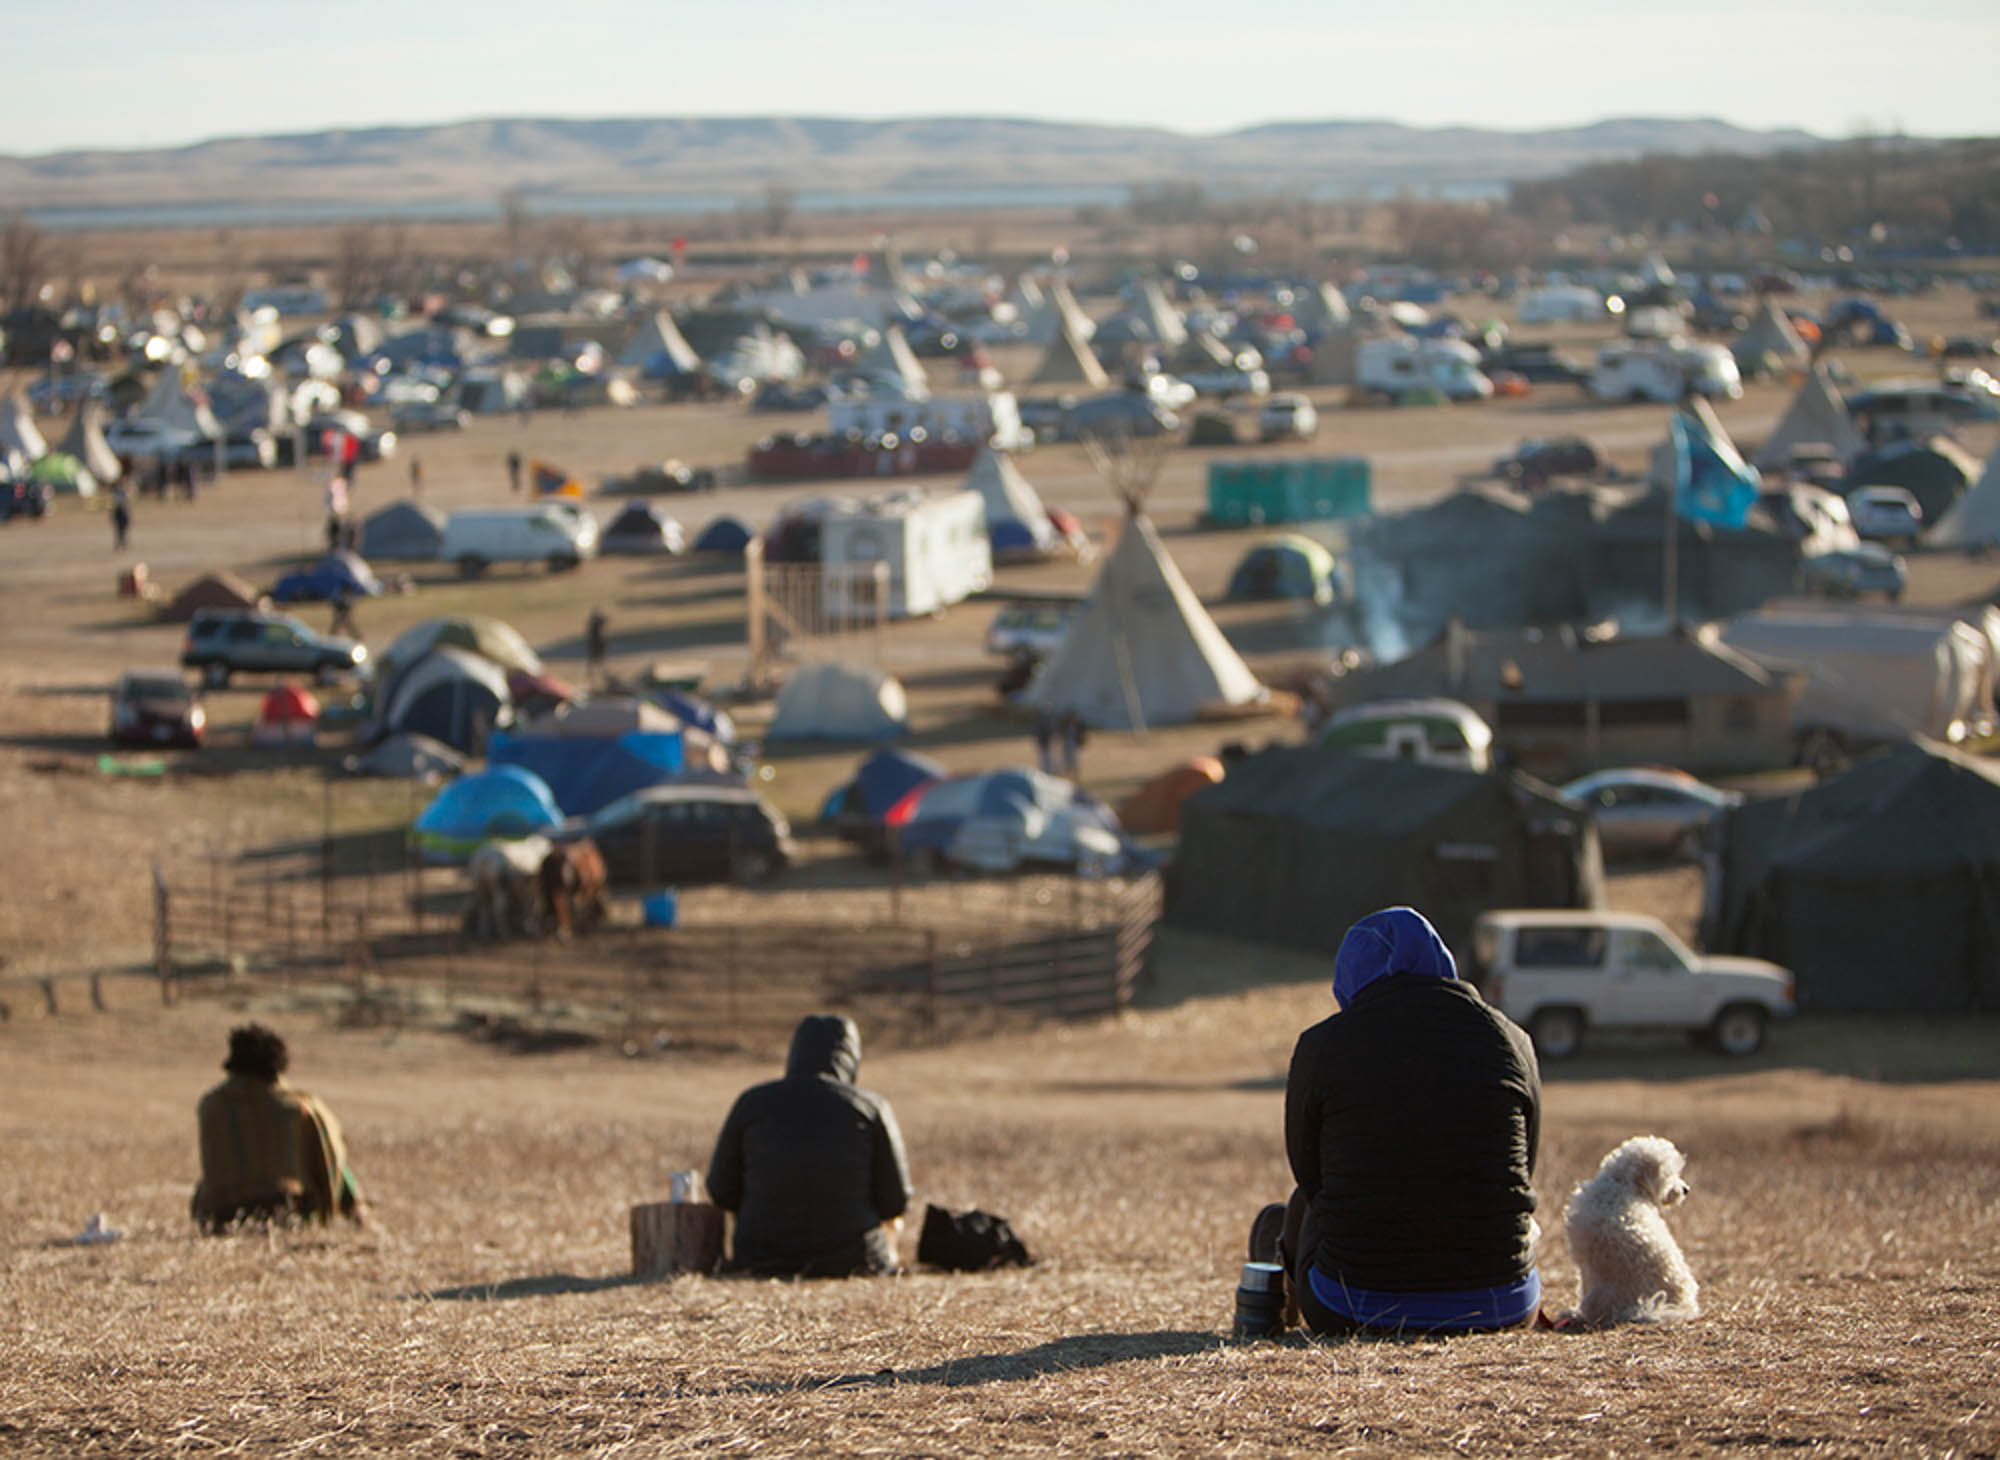 Protesters look over the Standing Rock protest site on a hill dubbed 'media hill'. 'Media hill' was one of the few places in the area cell phones were able to get reception and was often puncuated with people making calls and checking social media.